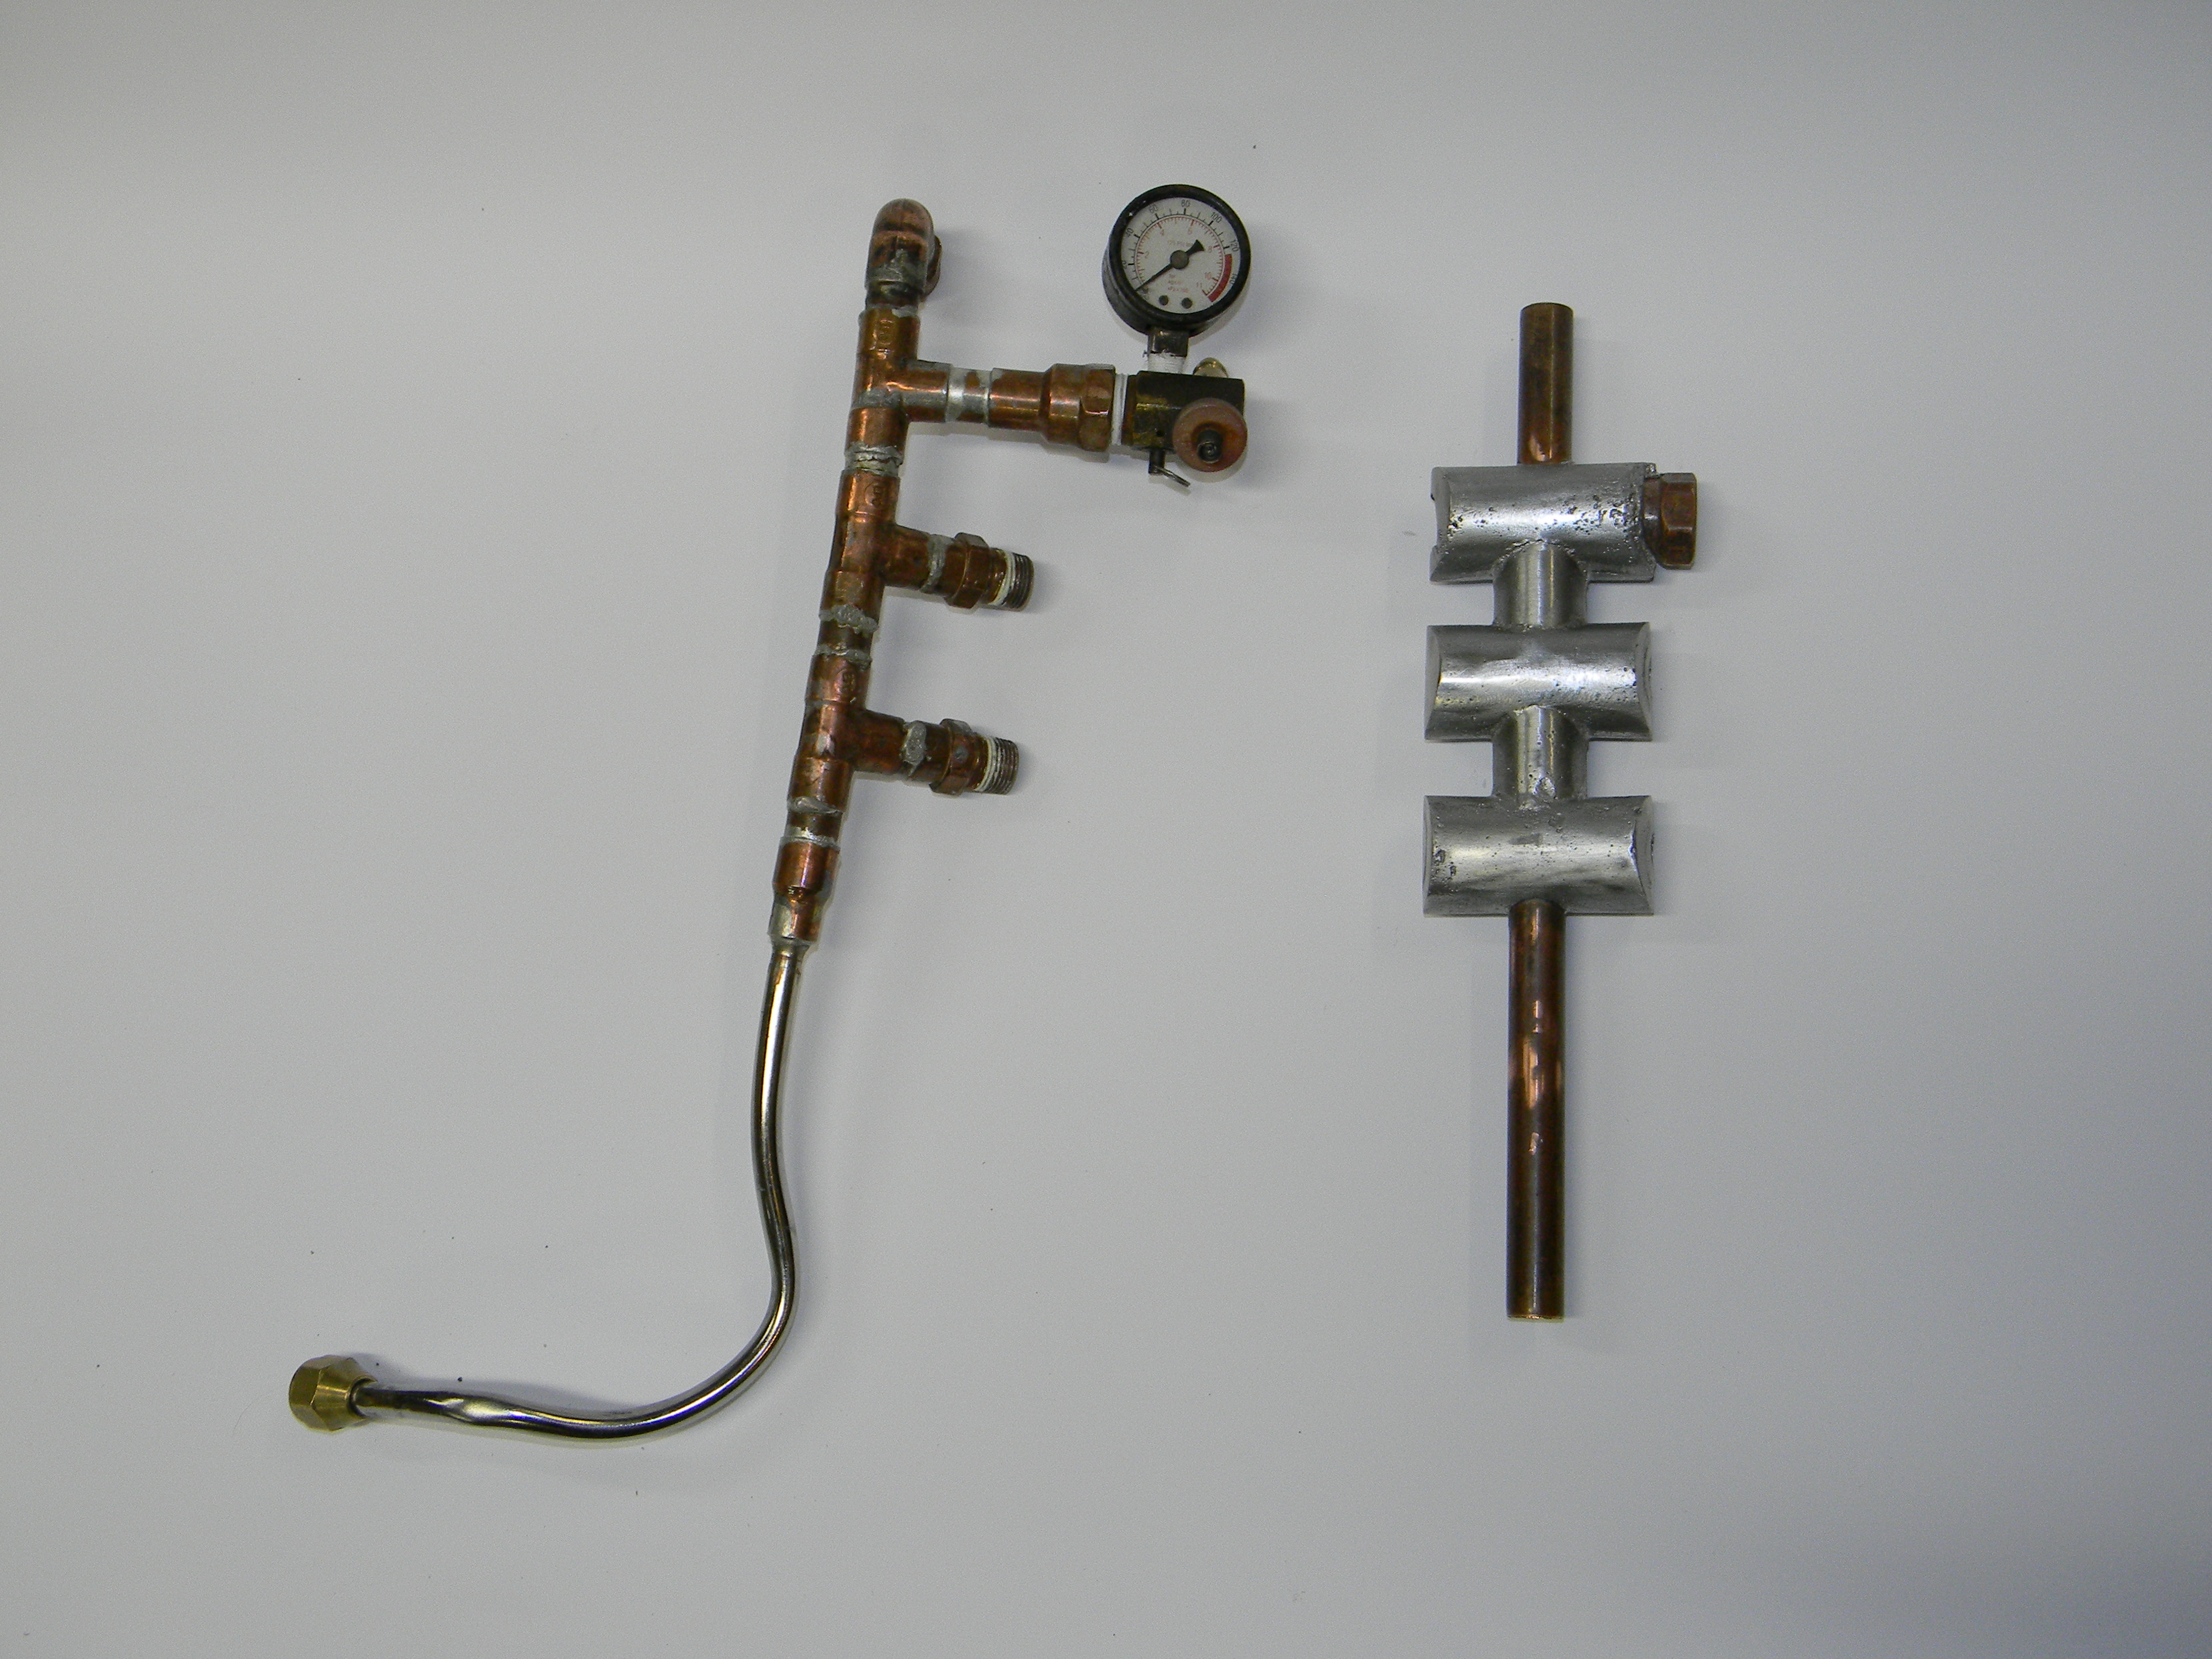 First and second generation manifolds